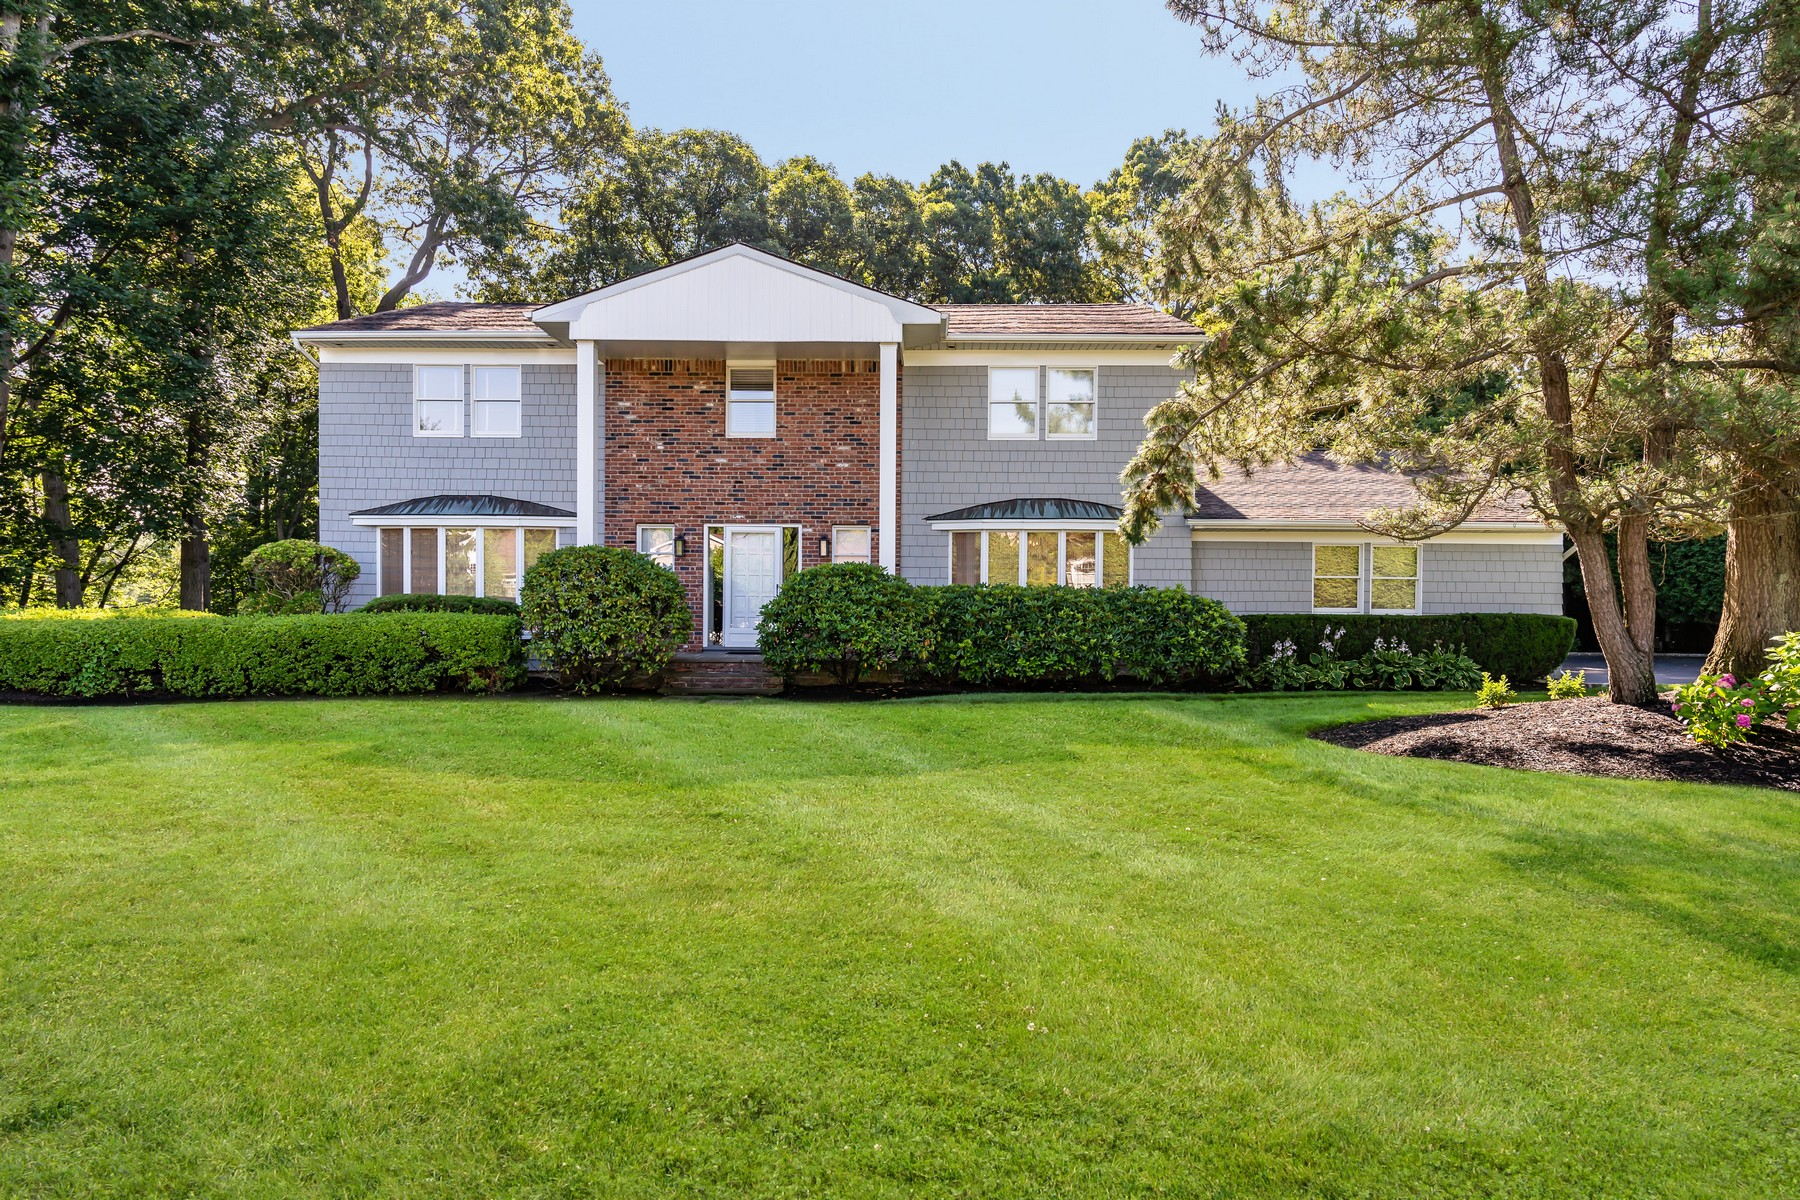 Single Family Homes for Sale at Melville 11 Louis Dr Melville, New York 11747 United States